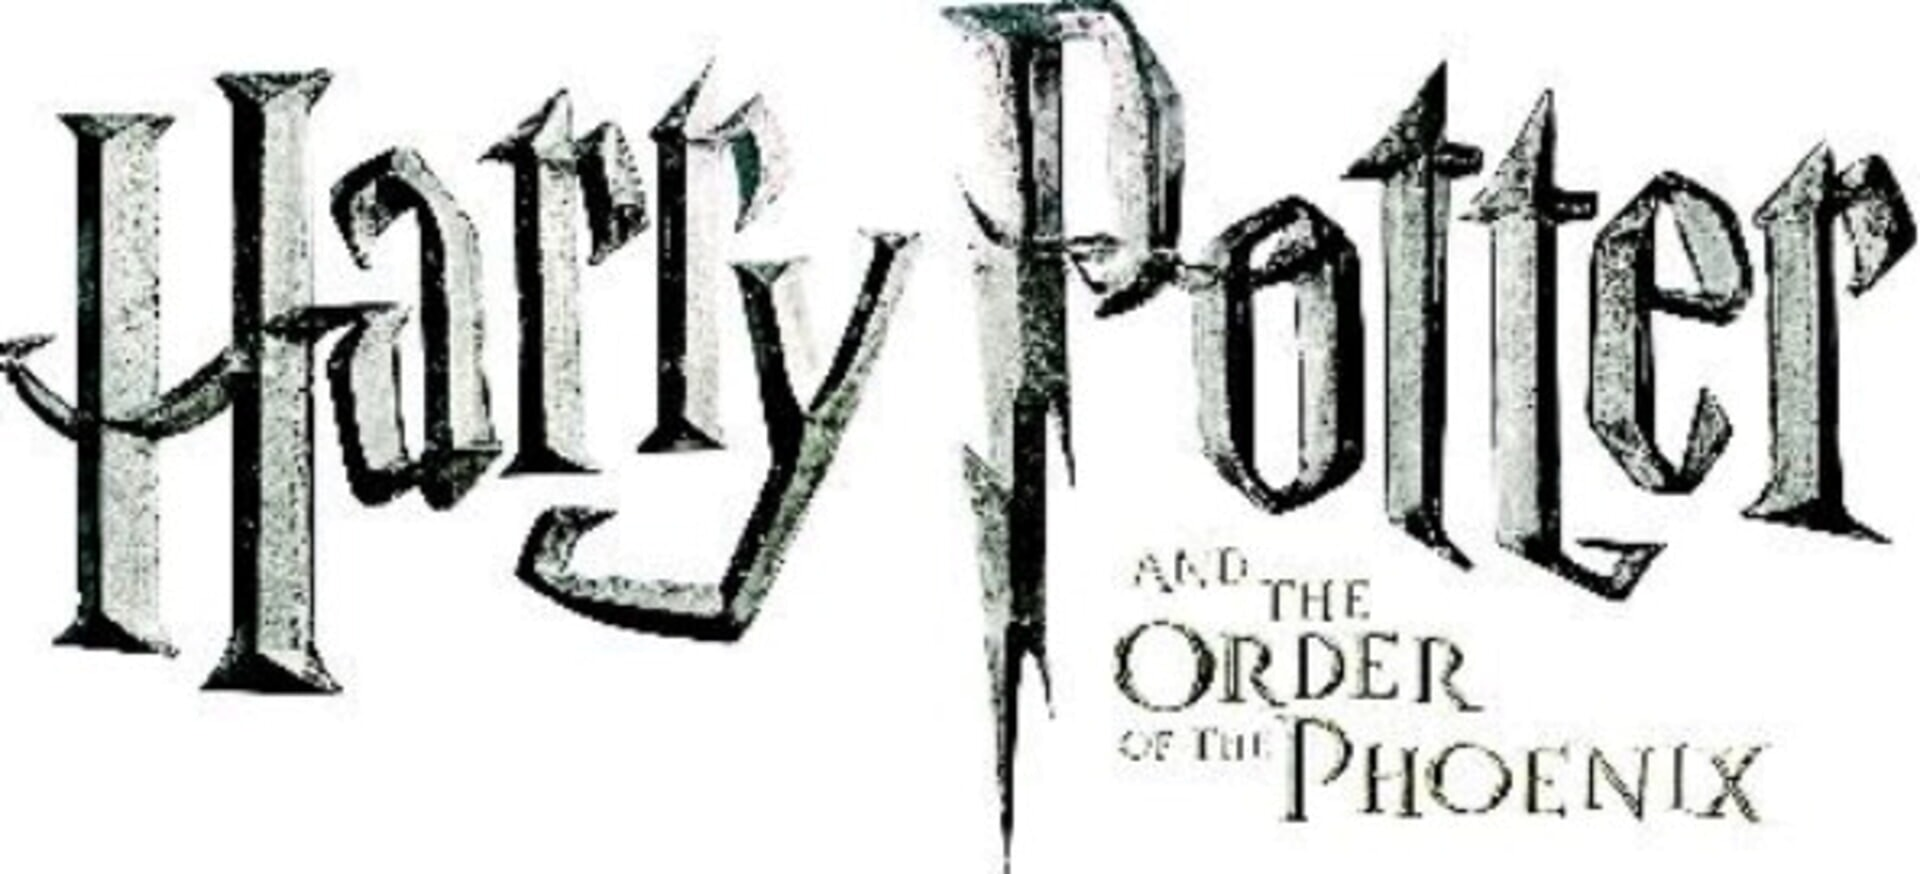 Harry Potter and the Order of the Phoenix - Image 41